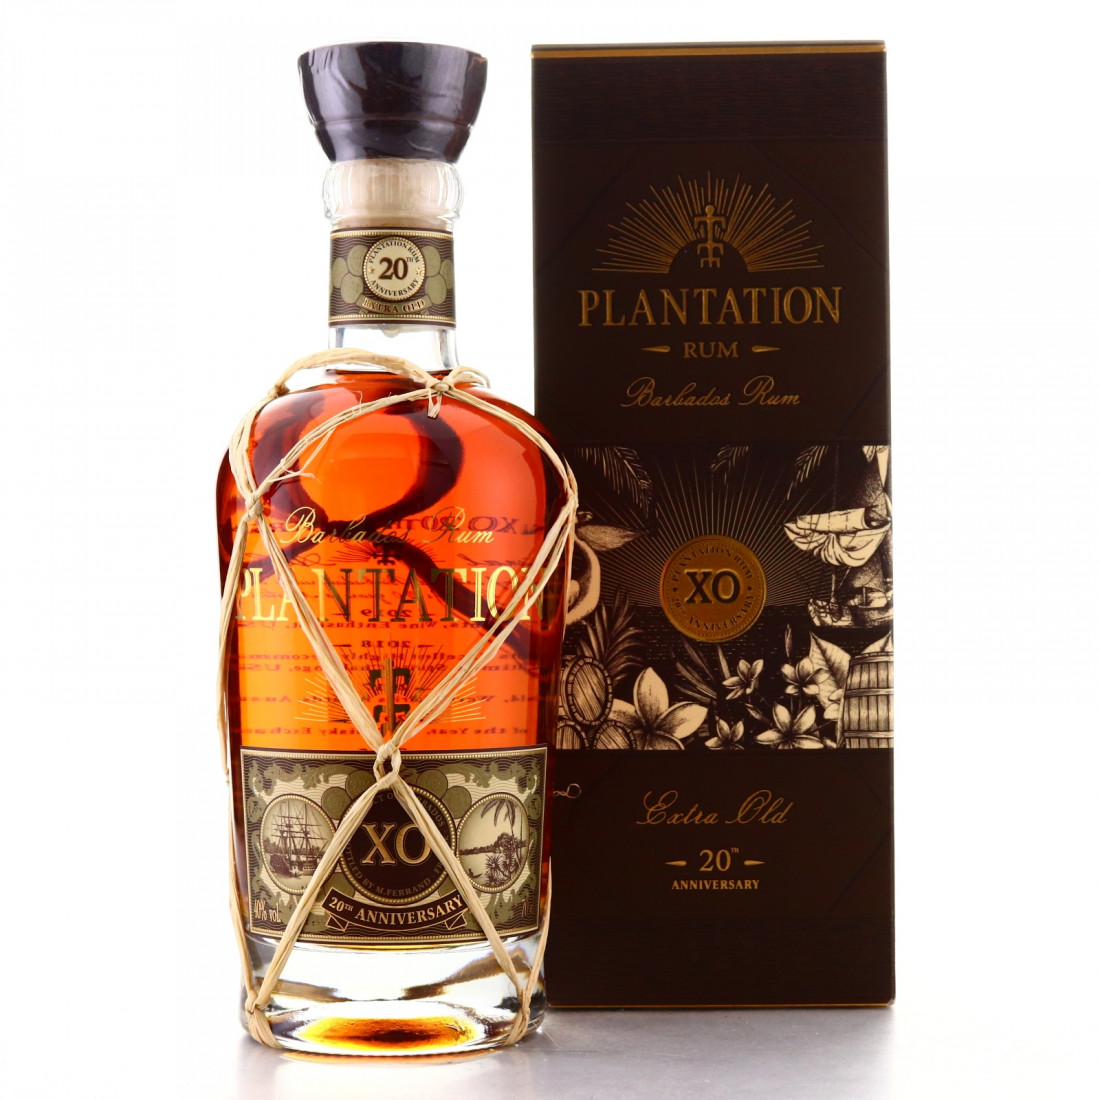 Barbados Rum XO Plantation 20th Anniversary | Rum Auctioneer